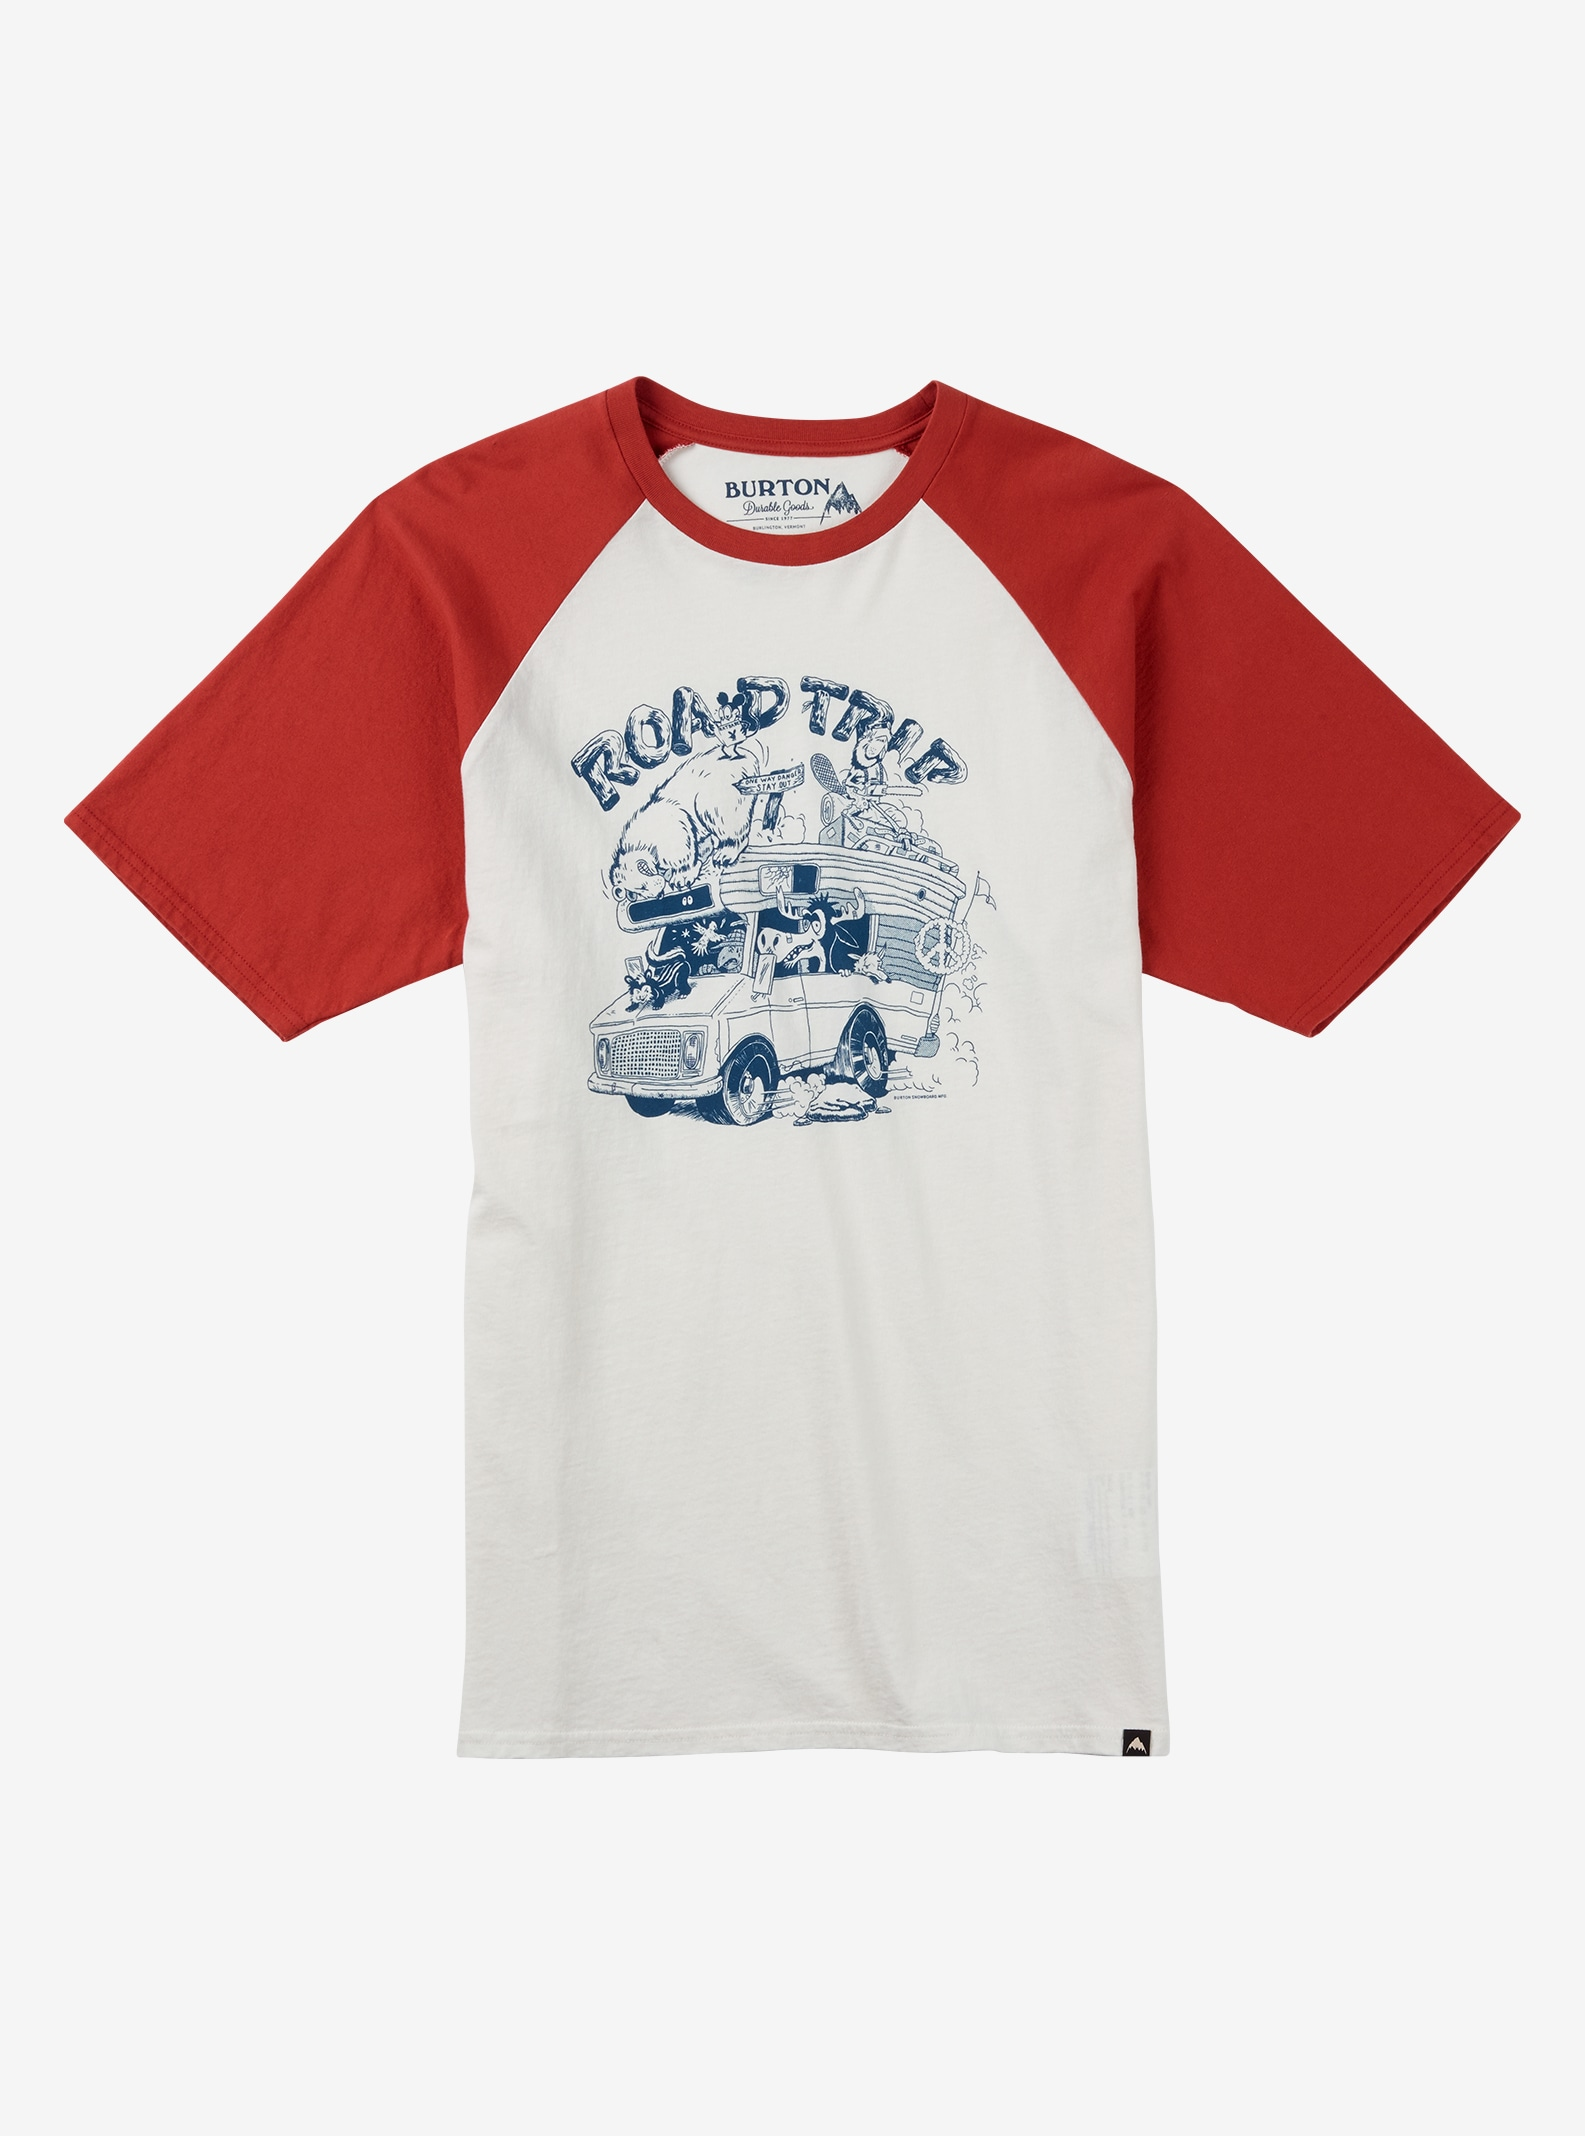 Burton Good Times Short Sleeve T Shirt shown in Stout White